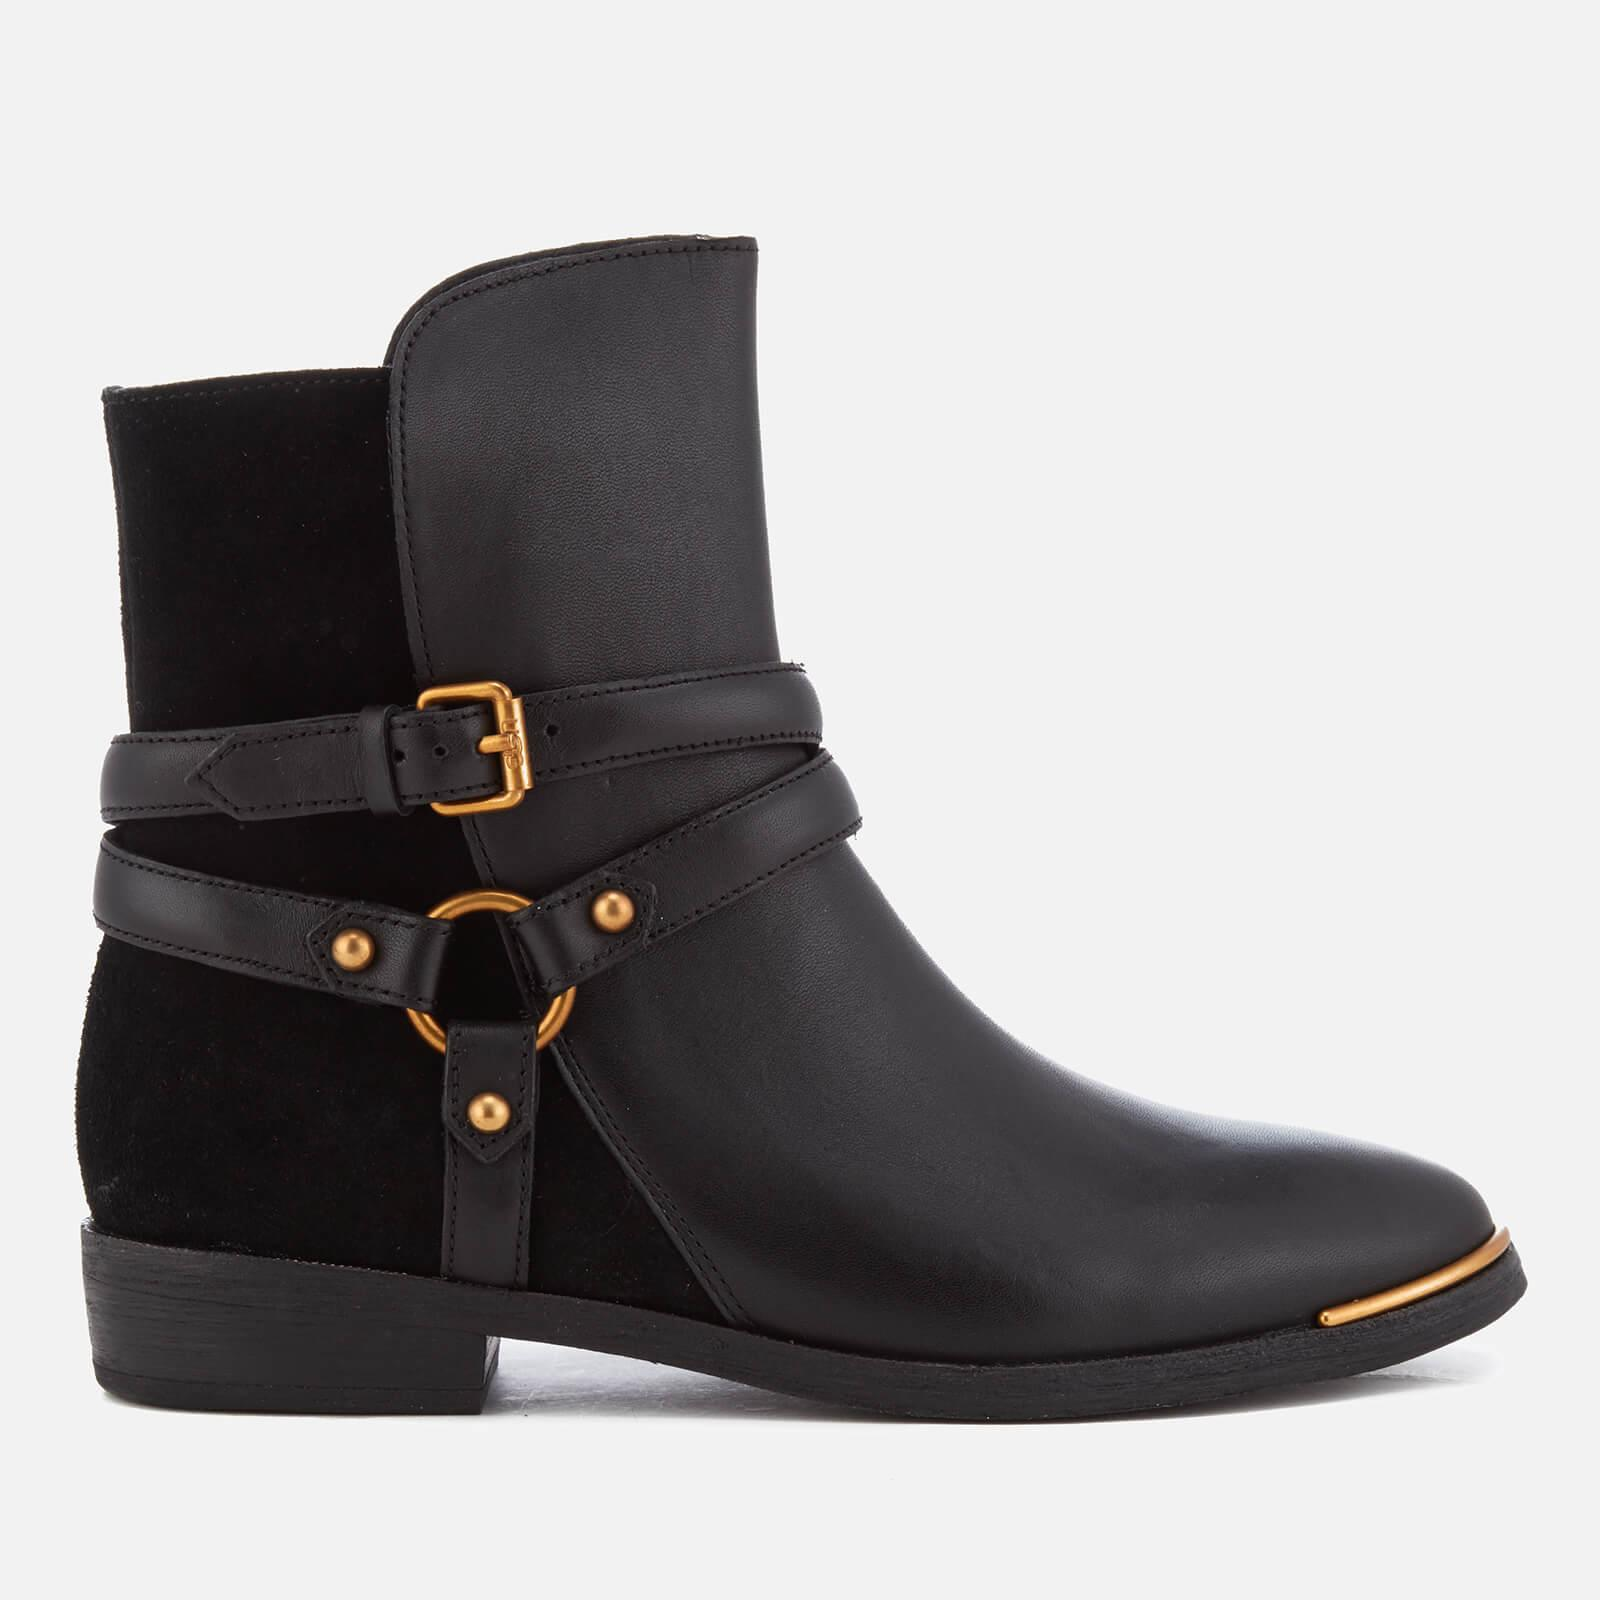 6e204d73f3f9 UGG Kelby Leather Ankle Boots in Black - Lyst